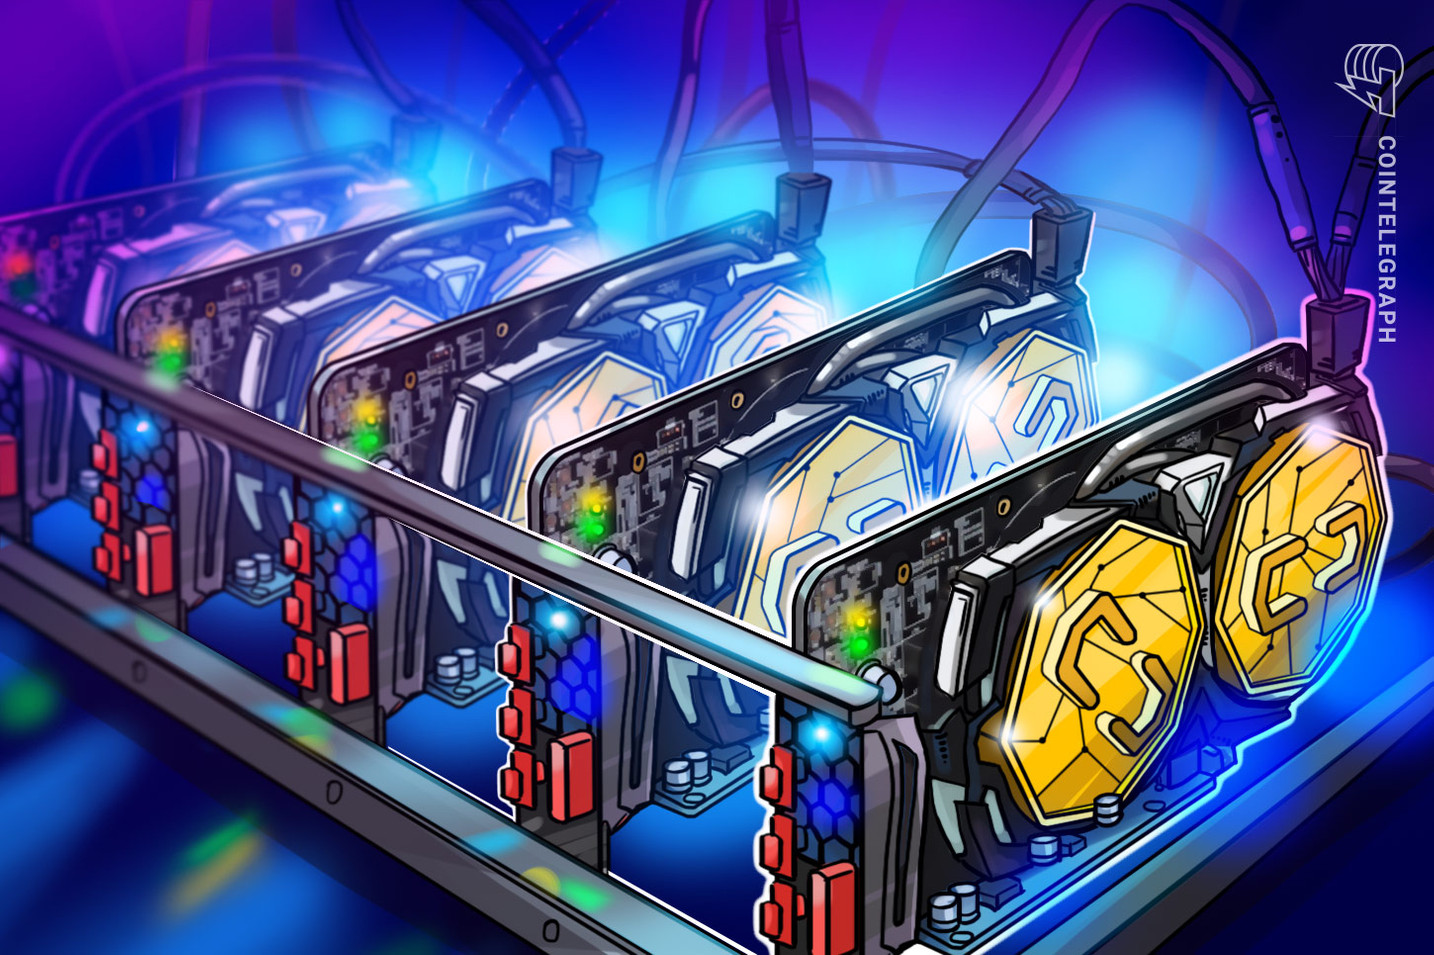 The blacklist: Marathon only mining 'fully compliant' Bitcoin transactions